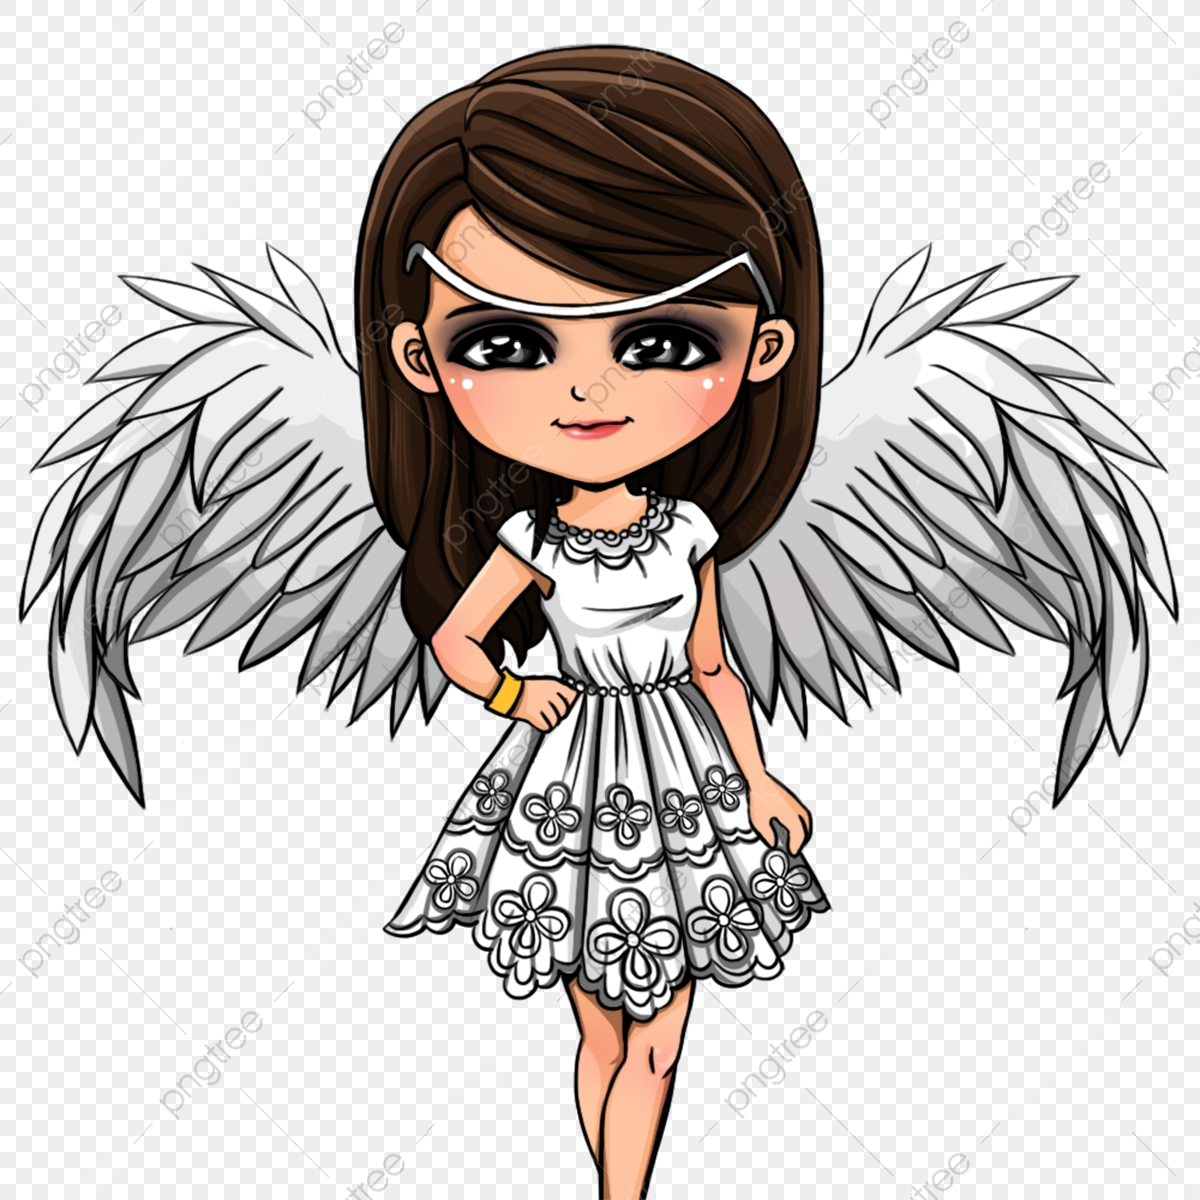 Chibi Angel Angel Icons Chibi Cartoon Png Transparent Clipart Image And Psd File For Free Download Download the angel, fantasy png on freepngimg for free. https pngtree com freepng chibi angel 3764001 html